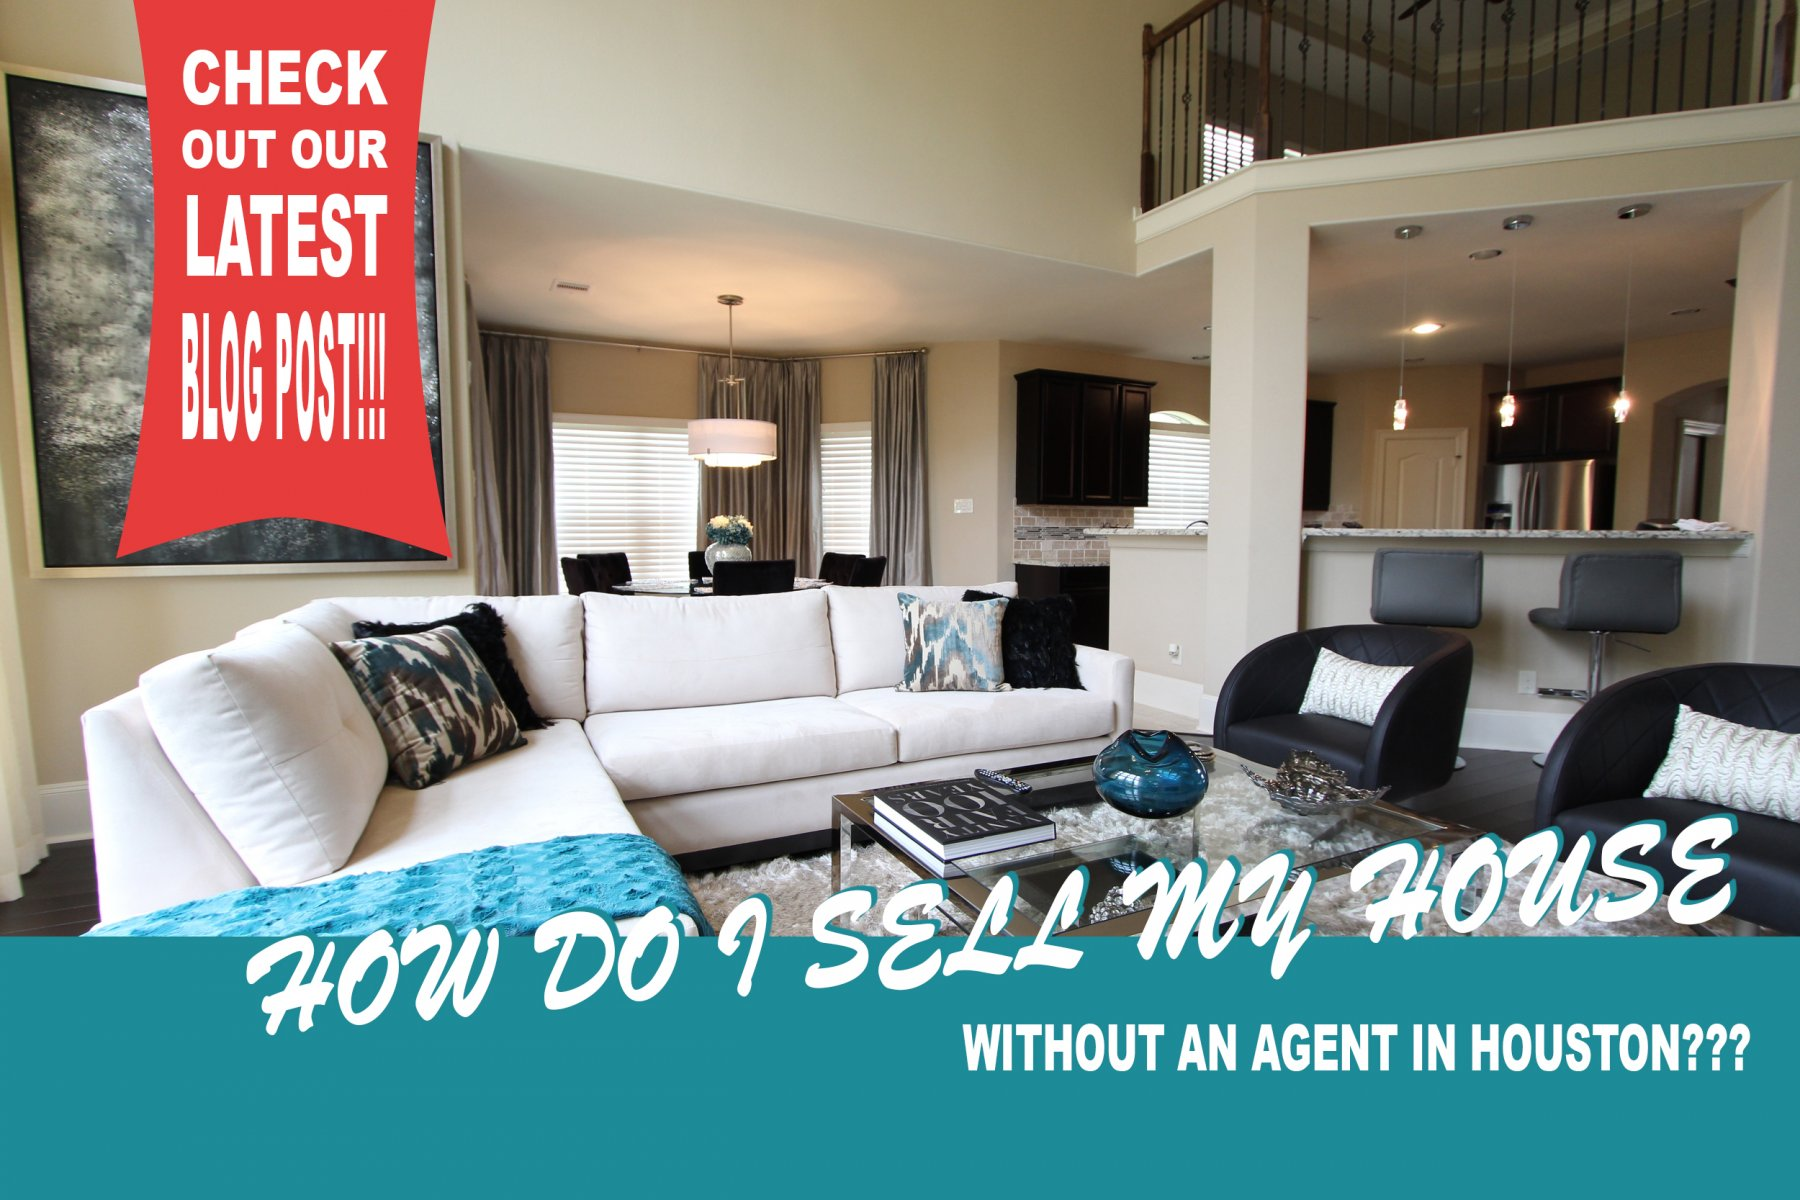 How Do I Sell My House Without An Agent In Houston